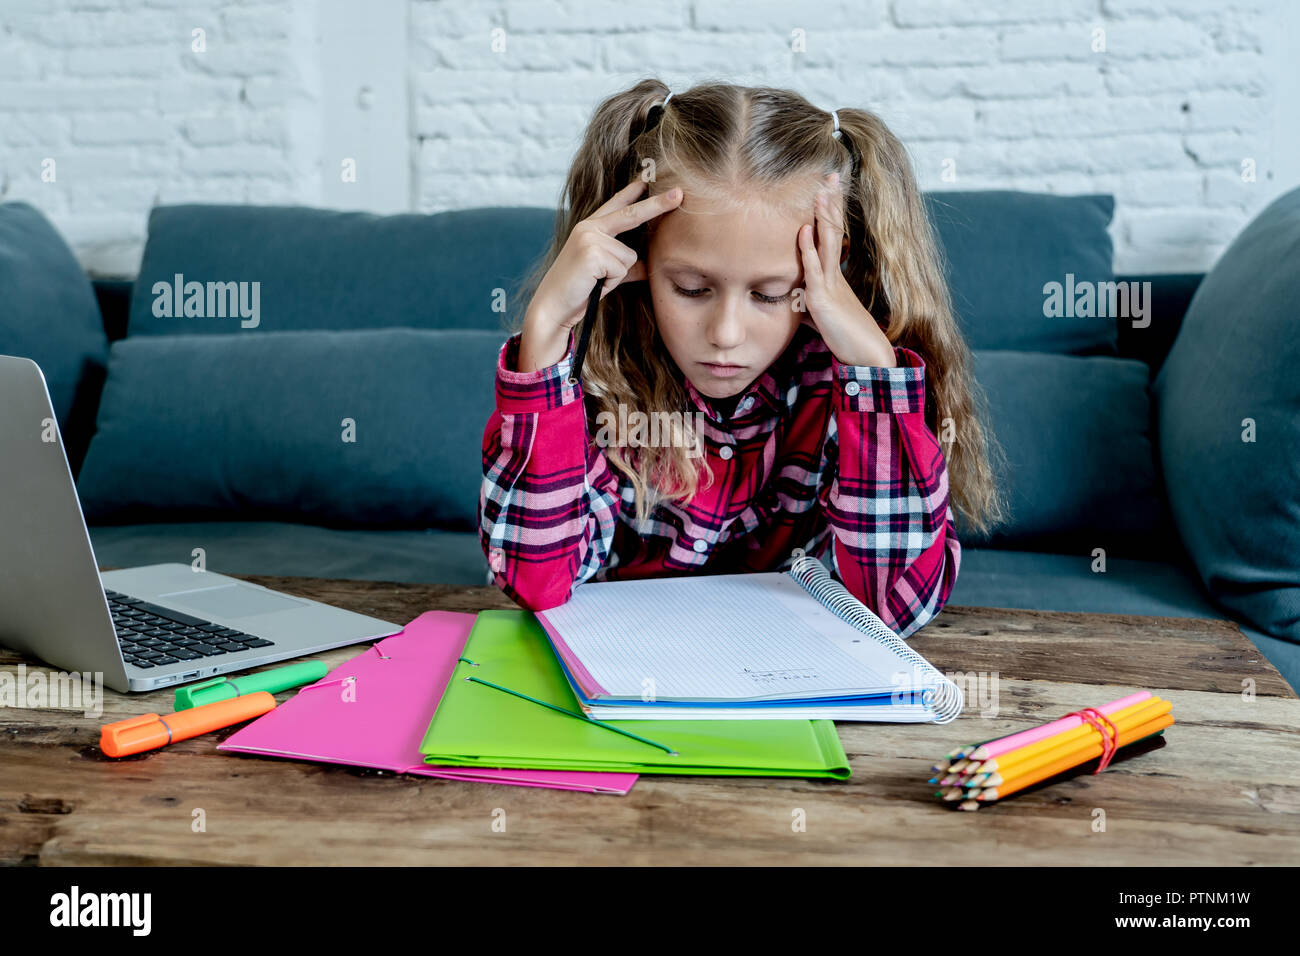 Beautiful cute blonde 9 years elementary student feeling sad bored and a overwhelmed trying to study at home in learning difficulties exams homework a - Stock Image